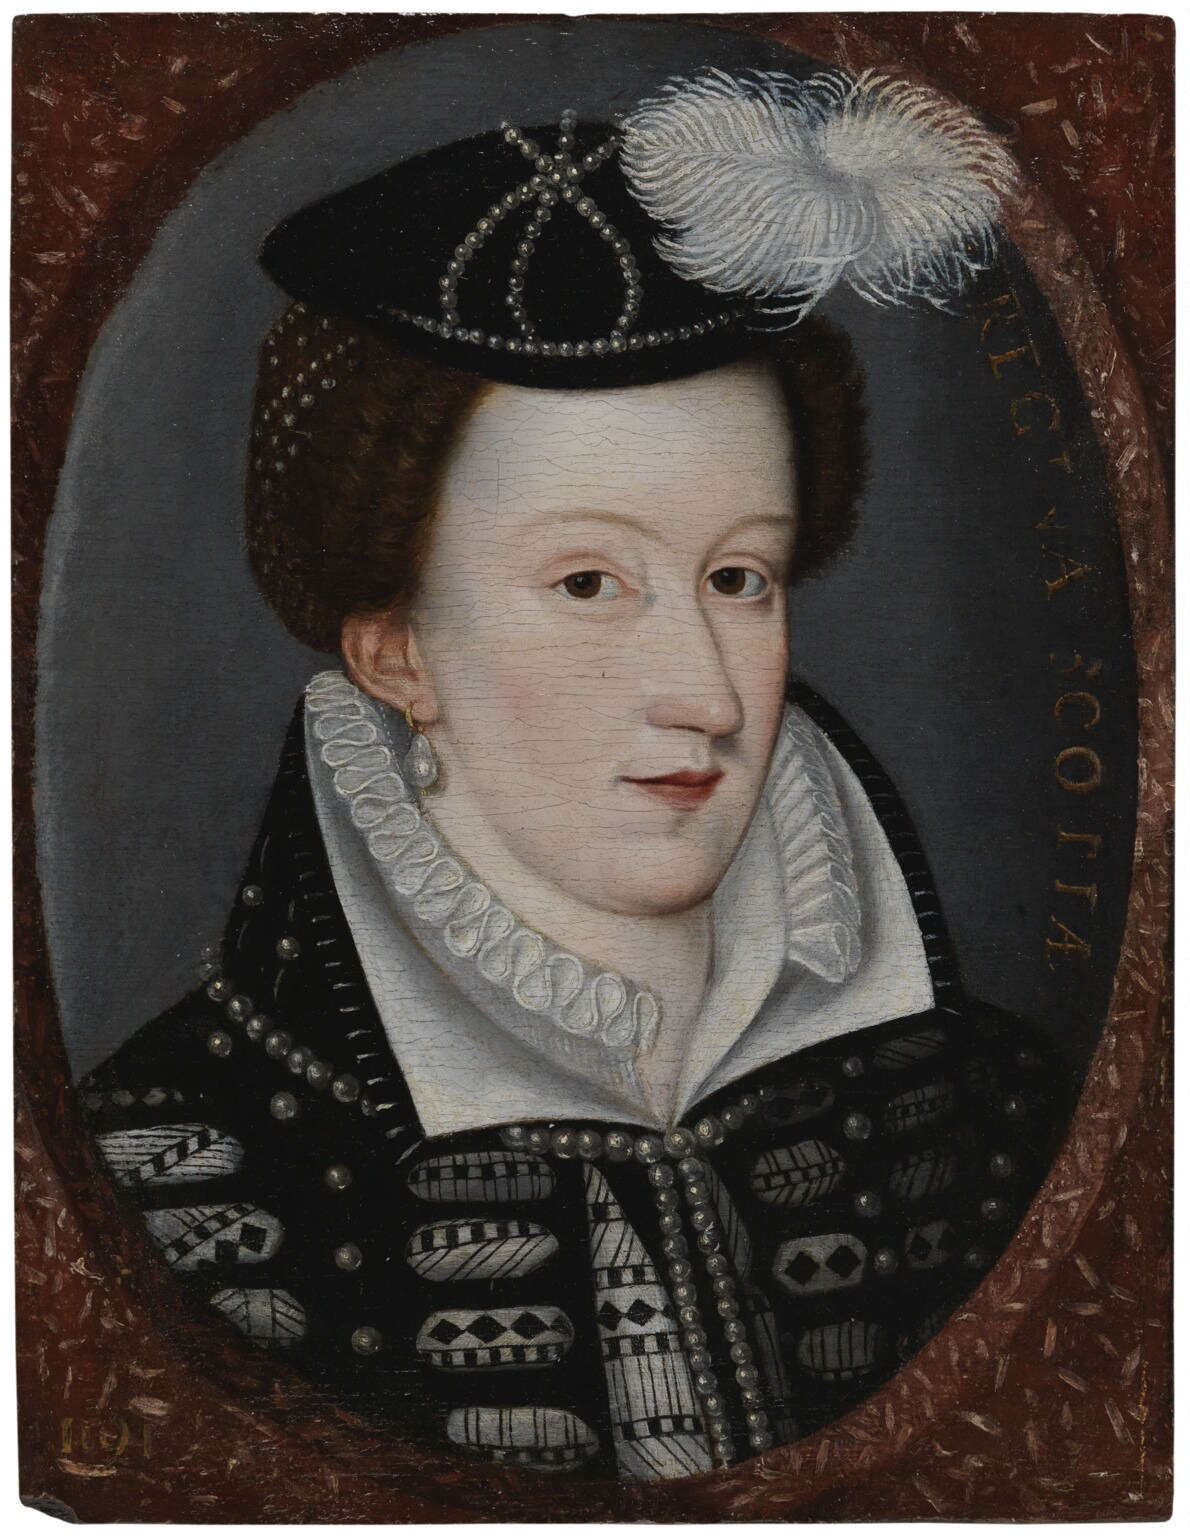 Archivo:Mary Queen of Scots portrait.jpg